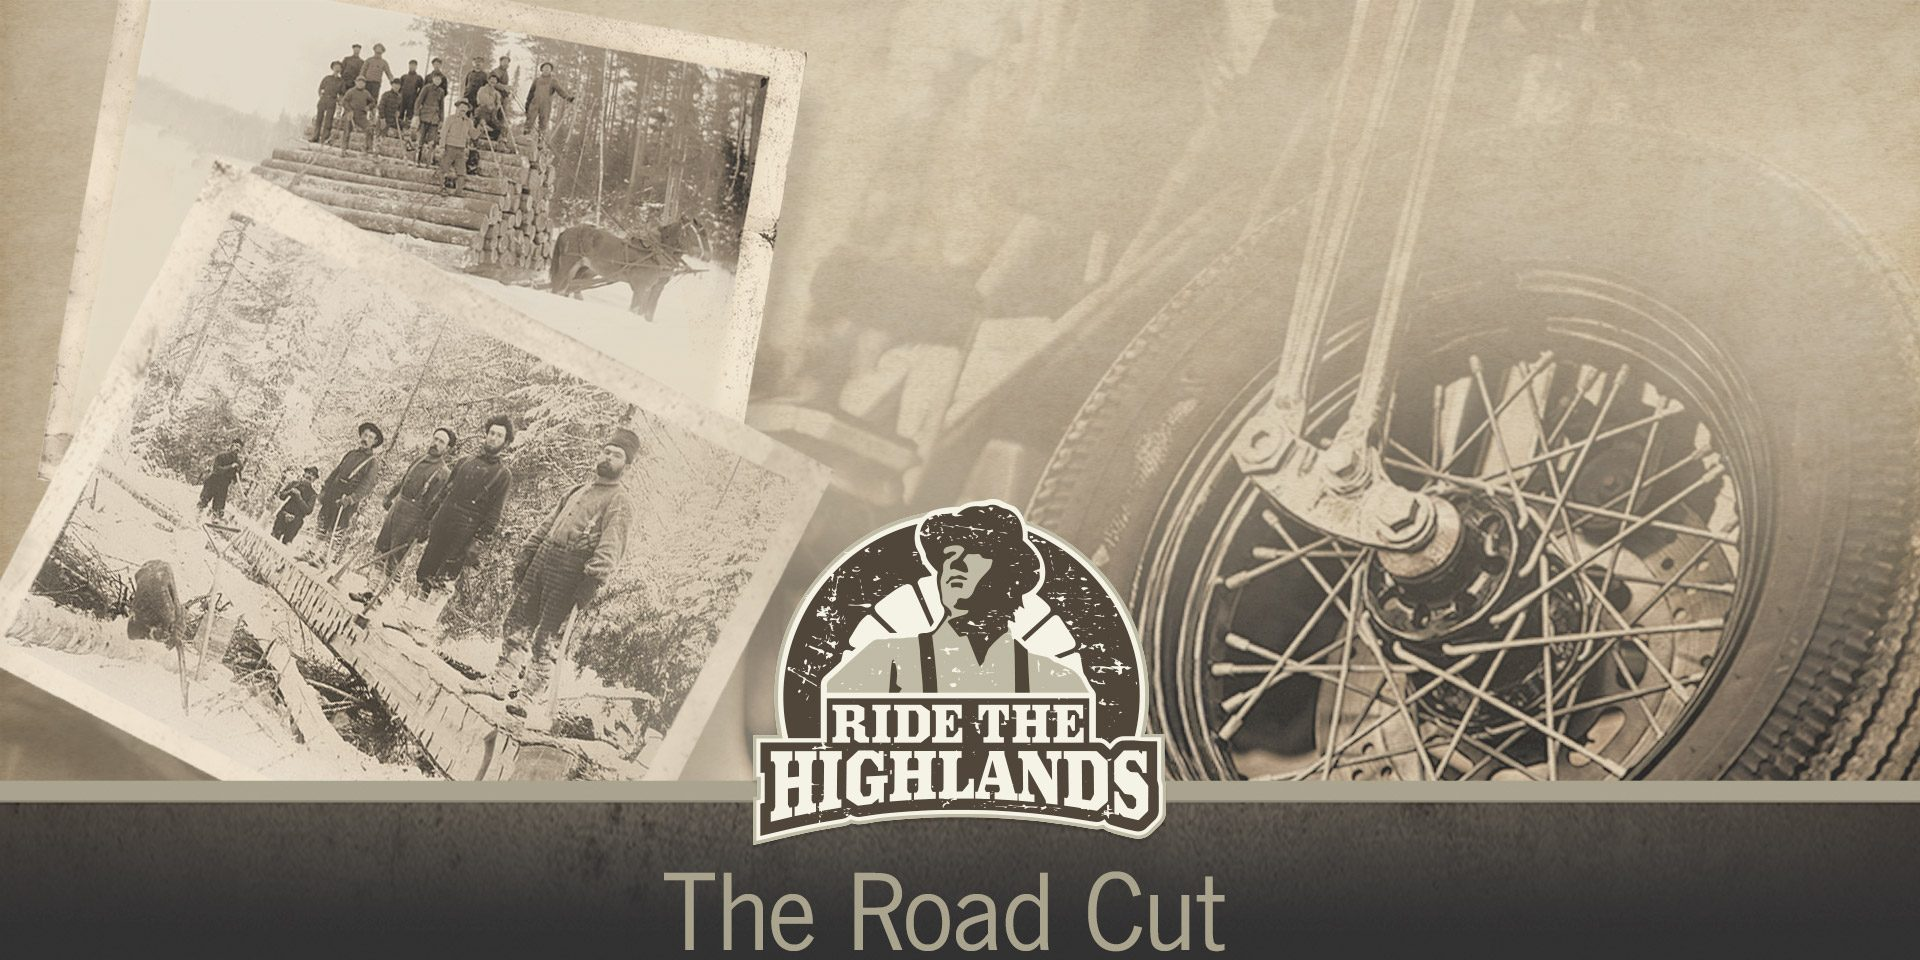 The Road Cut